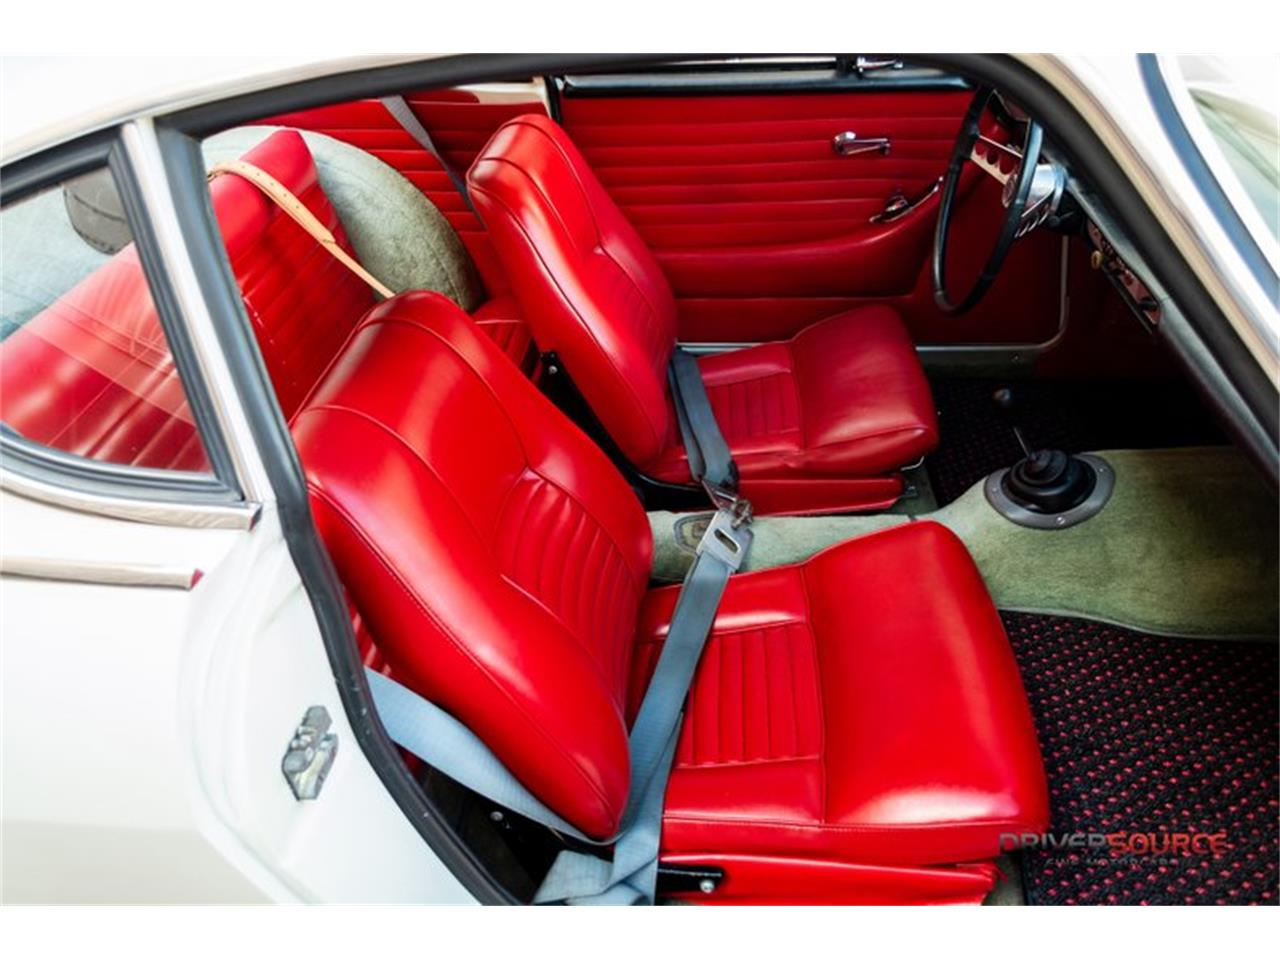 Large Picture of '64 Volvo P1800E - $49,250.00 Offered by Driversource - NNM3